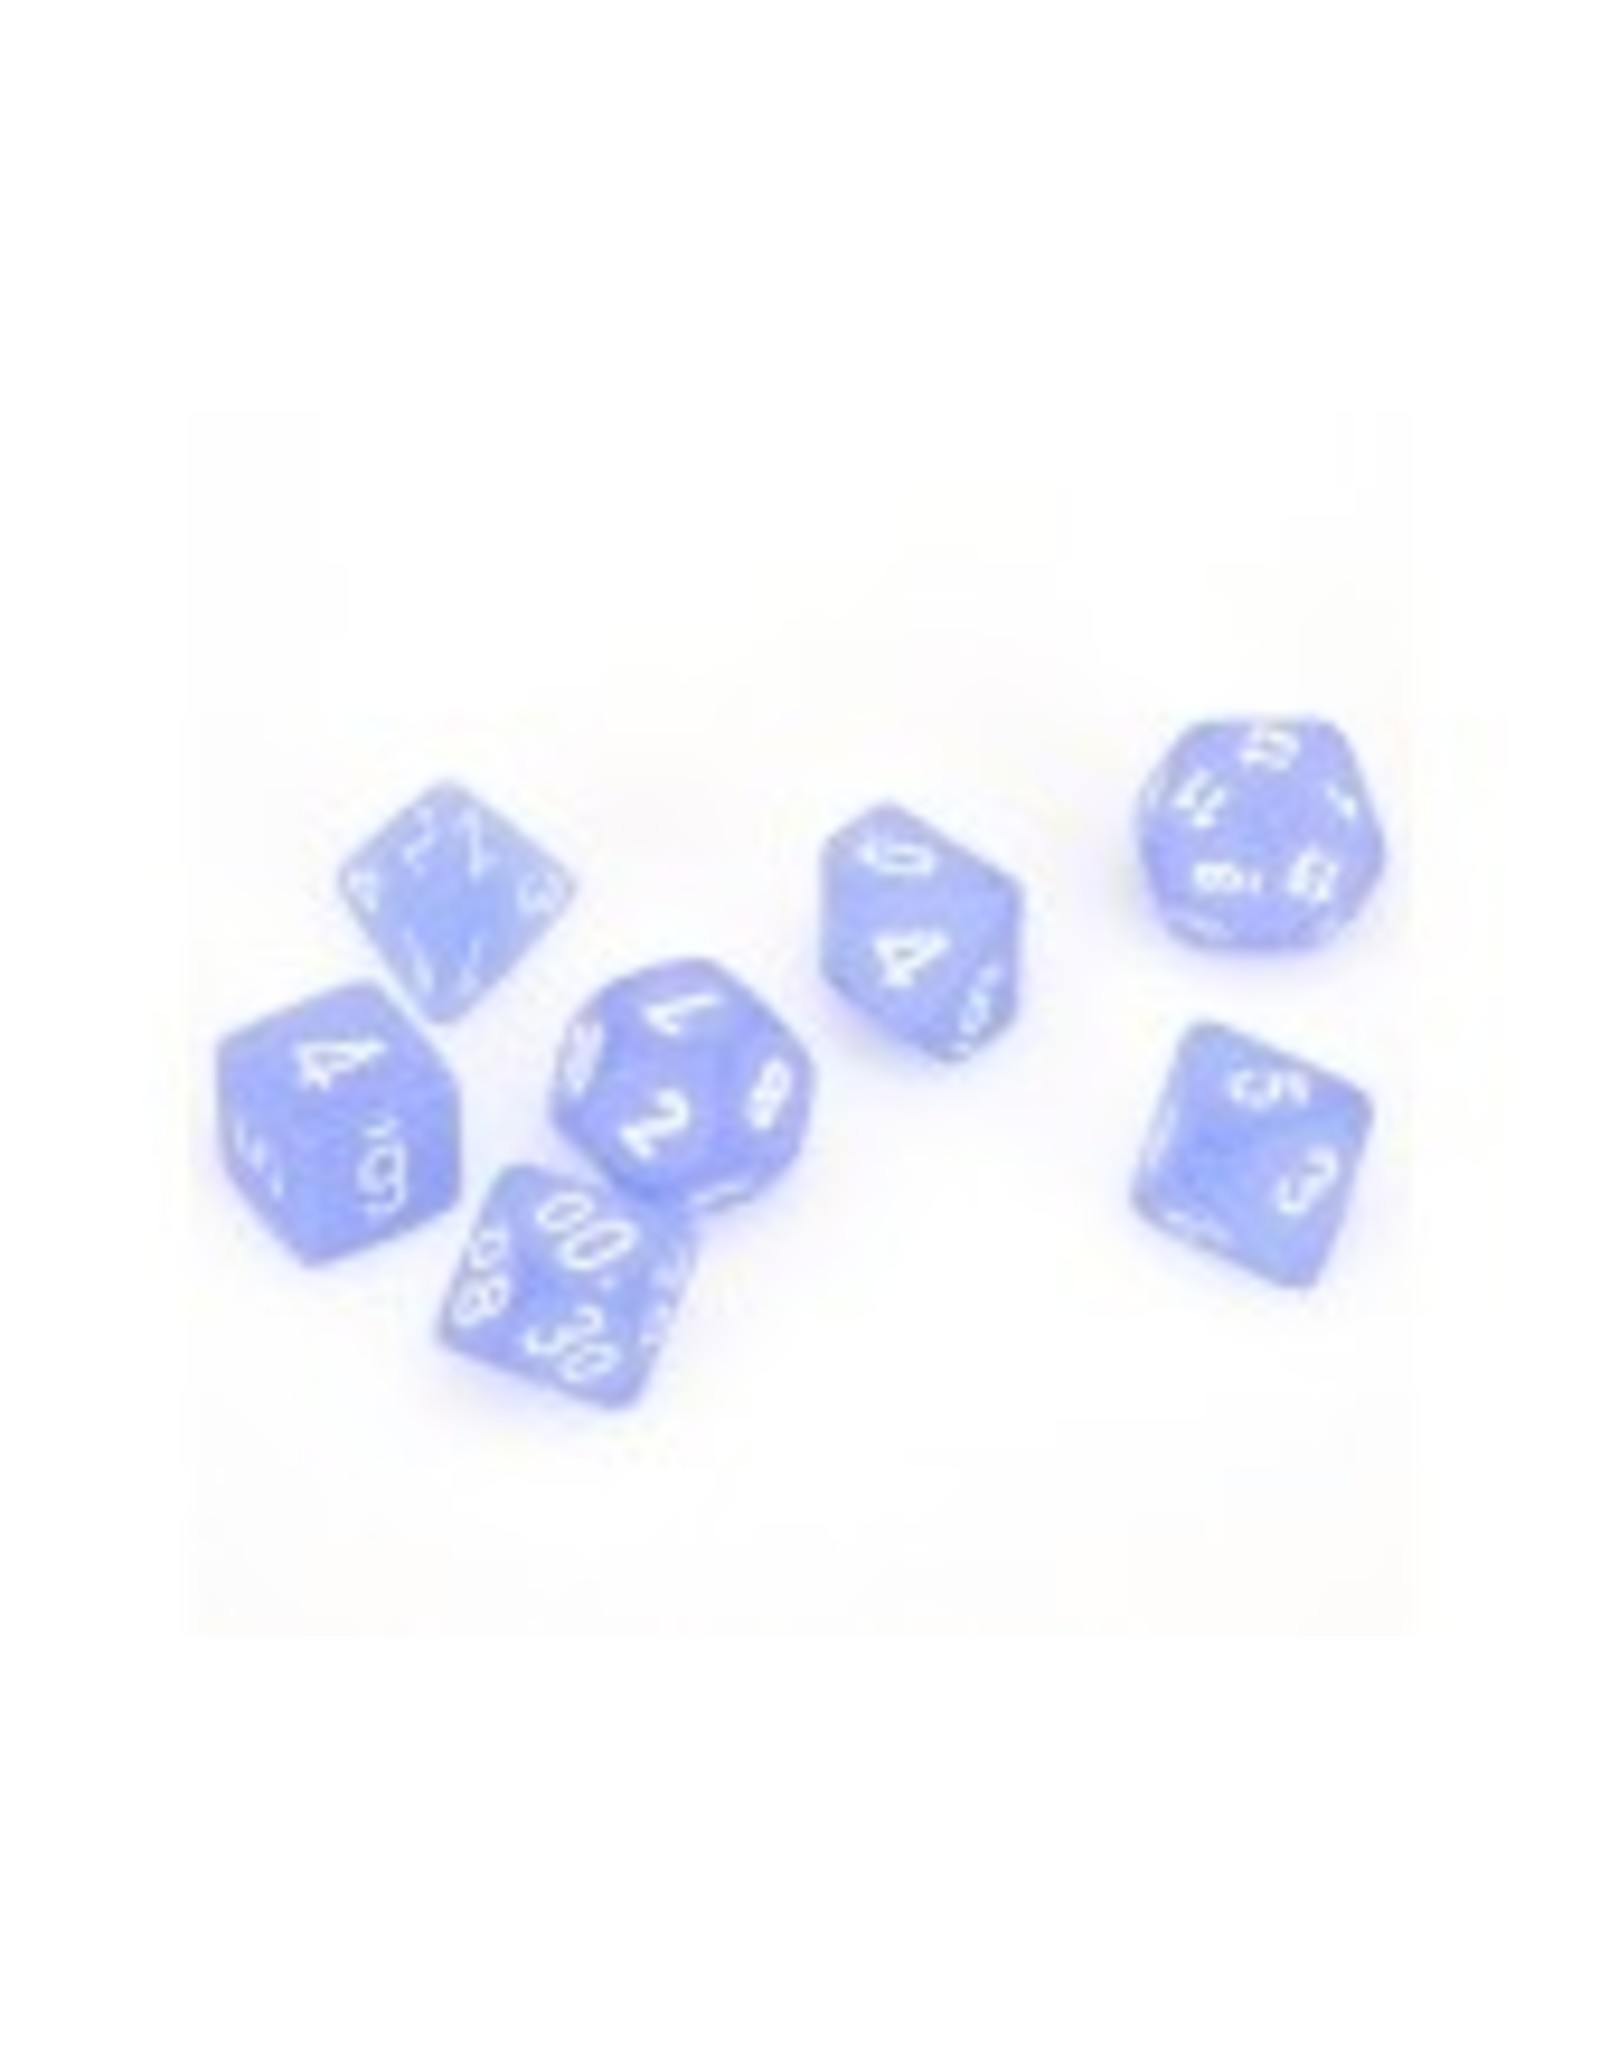 Chessex 7-Set Polyhedral Frosted Blue/White